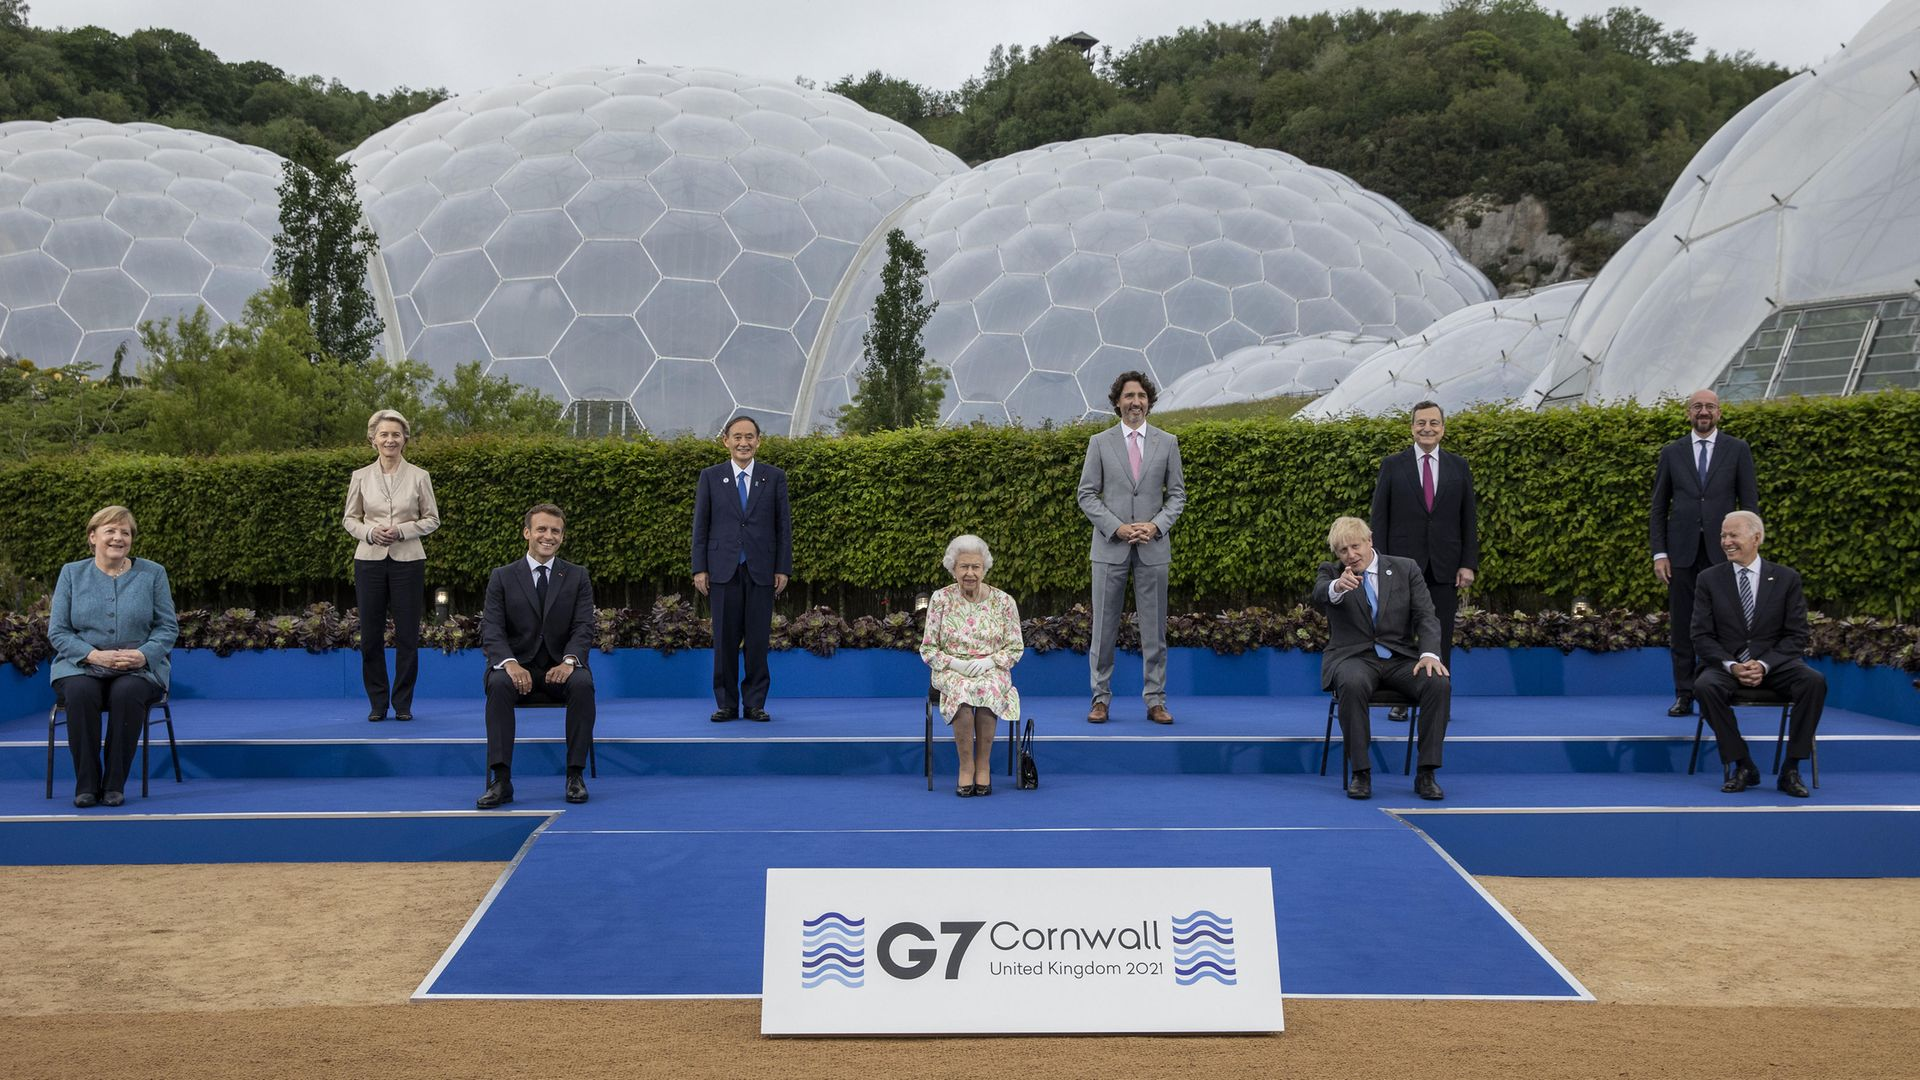 The Q, poses with G7 leaders at a reception at the Eden Project, in Cornwall. (Left to right, back row: president of the European Commission Ursula von der Leyen, Japanese PM Yoshihide Suga, Canadian PM Justin Trudeau, Italian PM Mario Draghi, president of the European Council Charles Michel; front row, left to right) German chancellor Angela Merkel, French president Emmanuel Macron, British PM Boris Johnson and US president Joe Biden) - Credit: PA